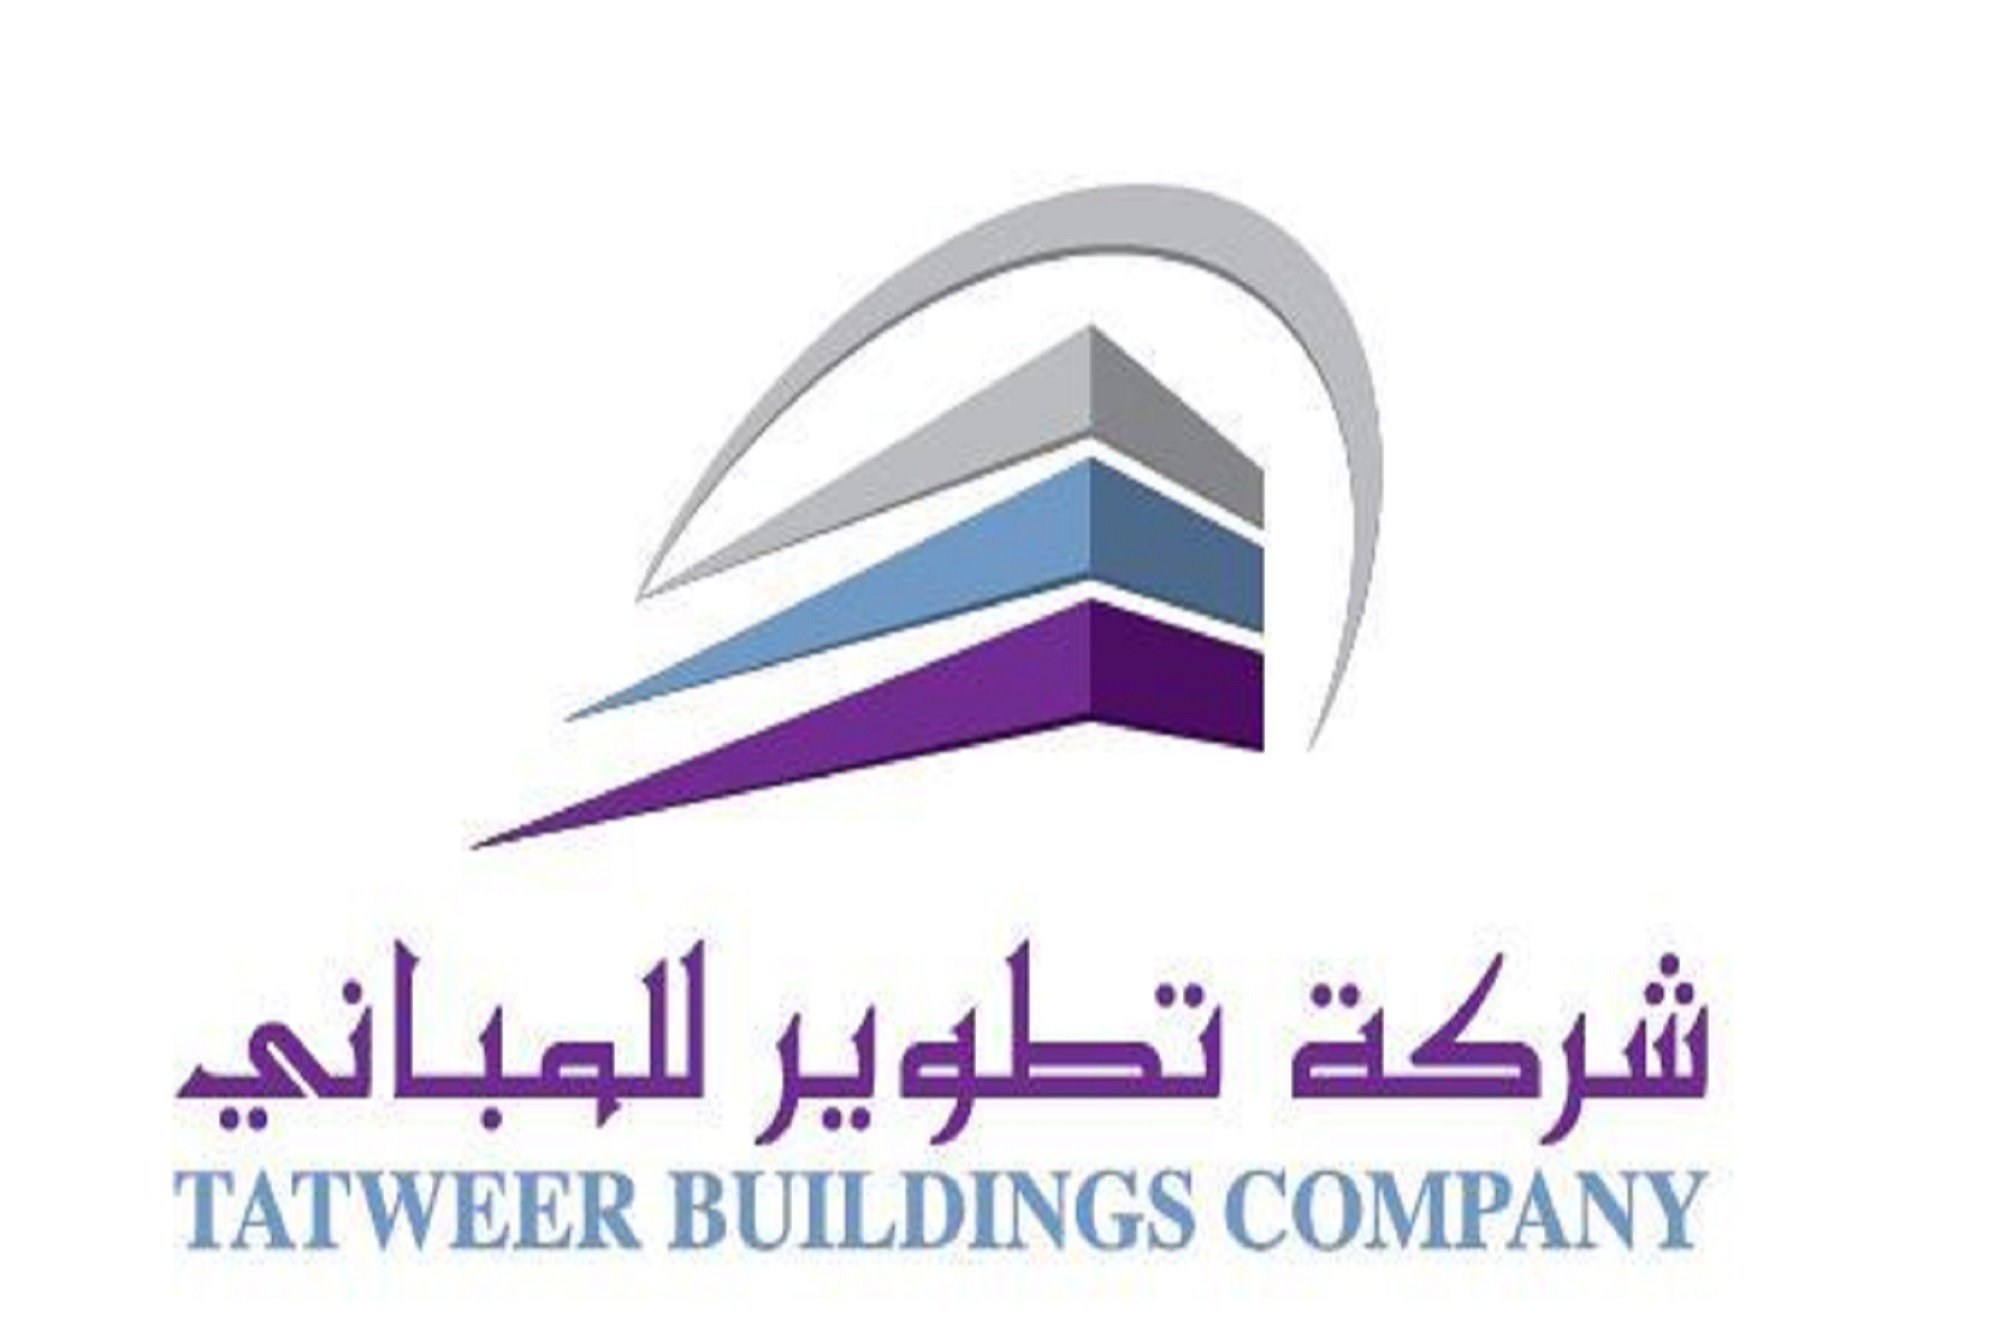 TATWEER BUILDINGS COMPANY